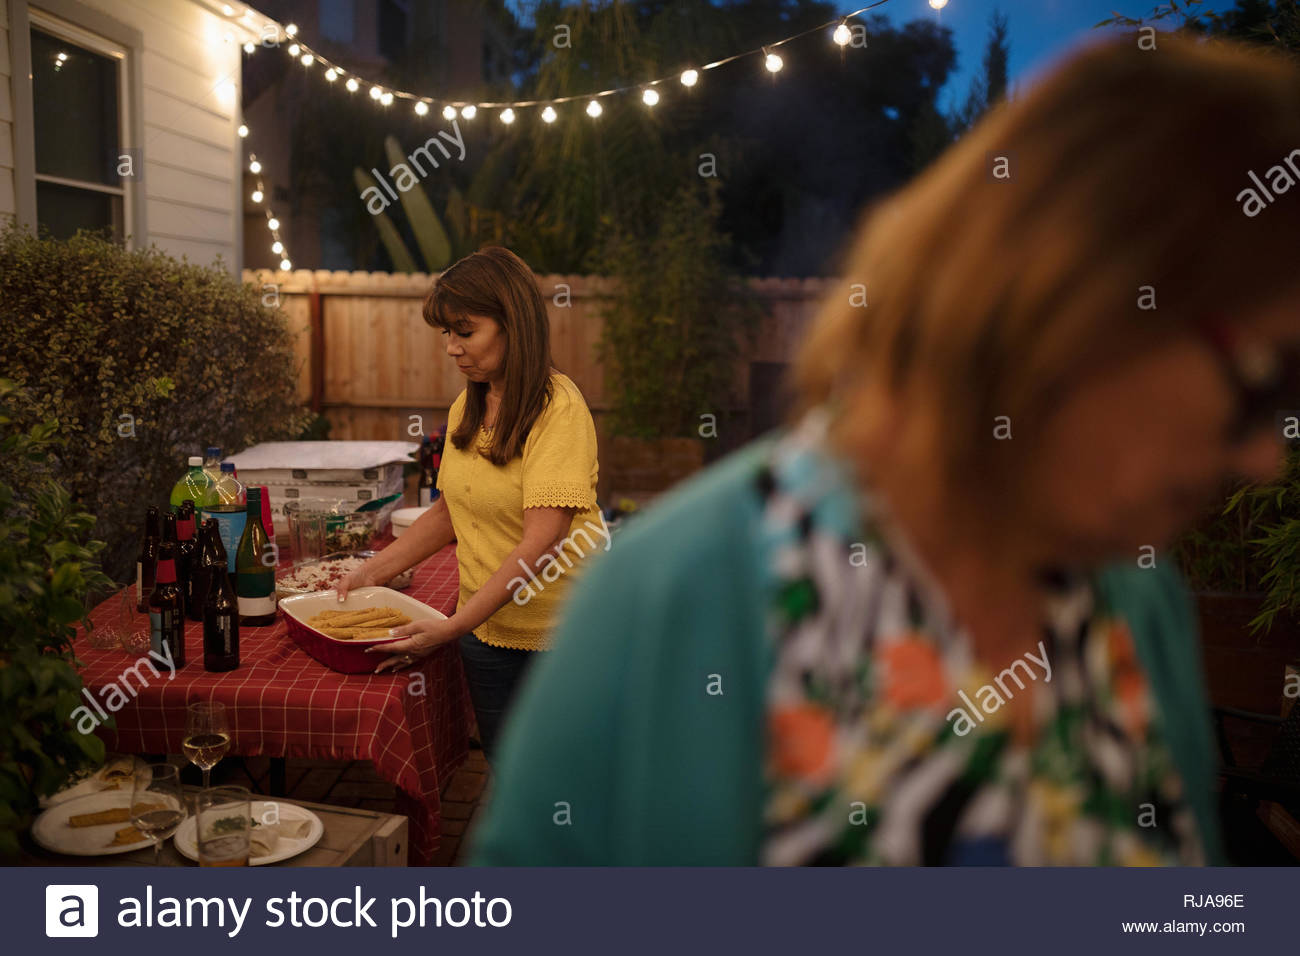 Latinx woman cleaning up after patio barbecue - Stock Image